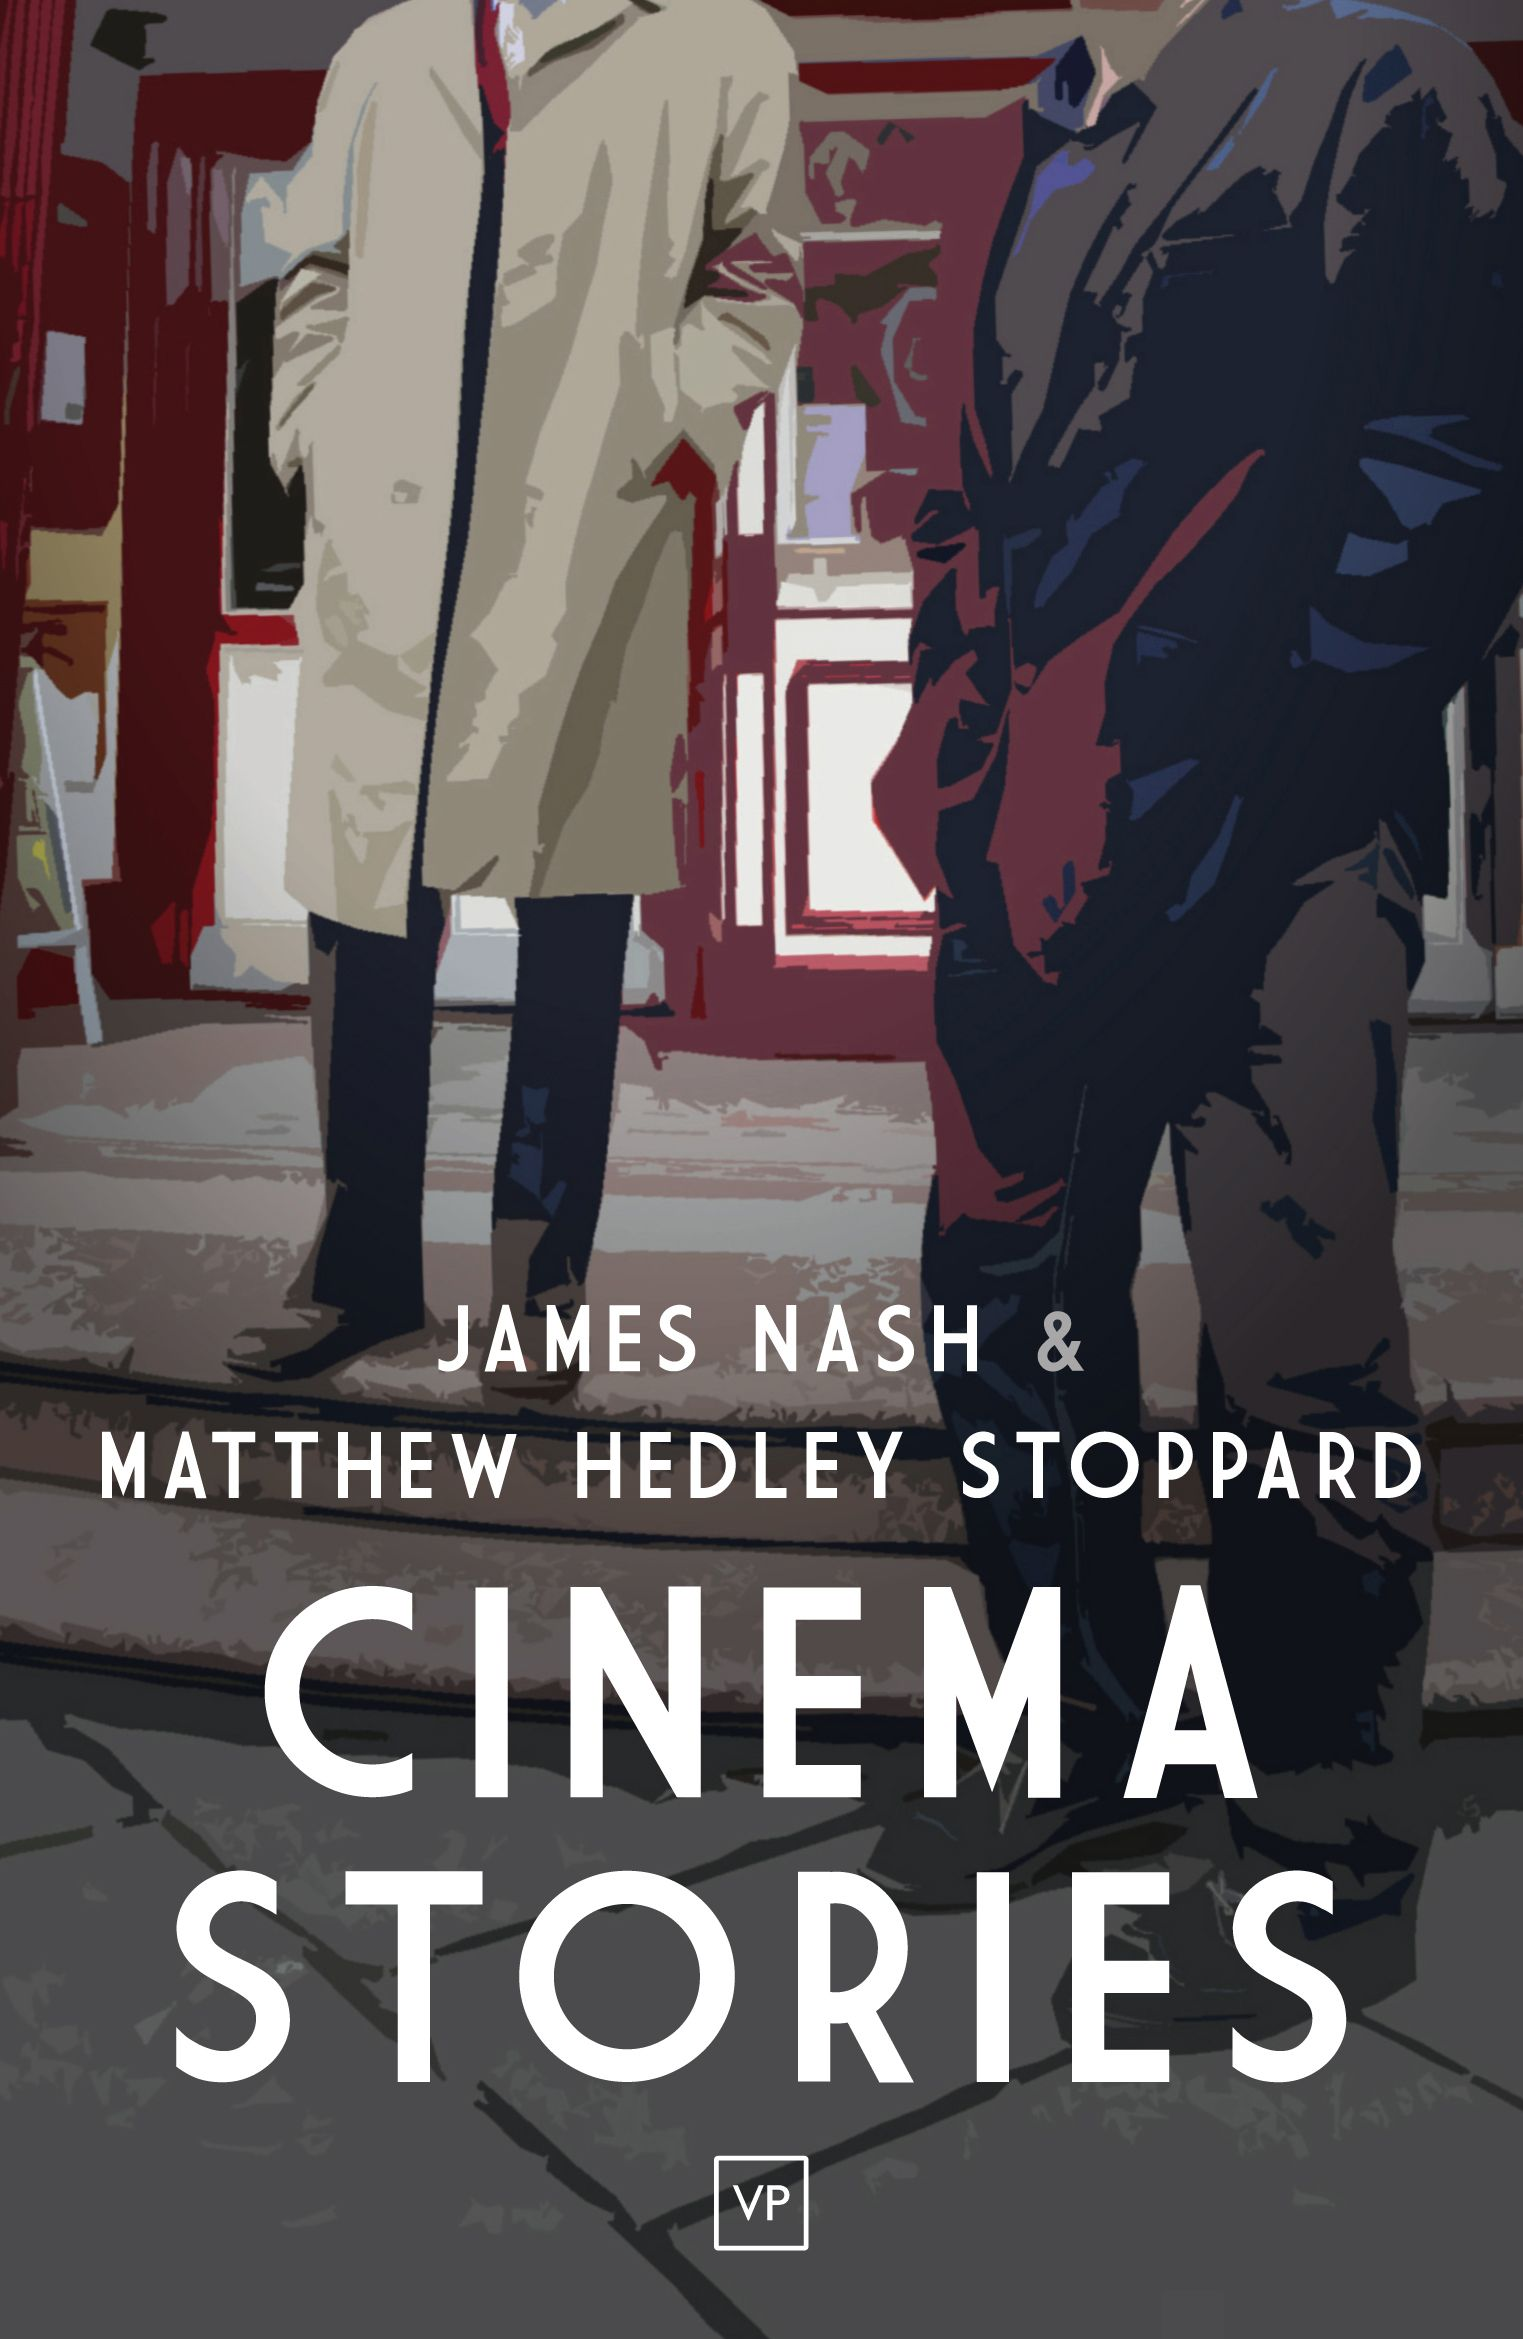 'Cinema Stories' by James Nash and Matthew Hedley Stoppard, first published November 2015. Design by Jamie McGarry, based on a photograph by Kevin Hickson. Full details: http://www.valleypressuk.com/books/cinemastories/